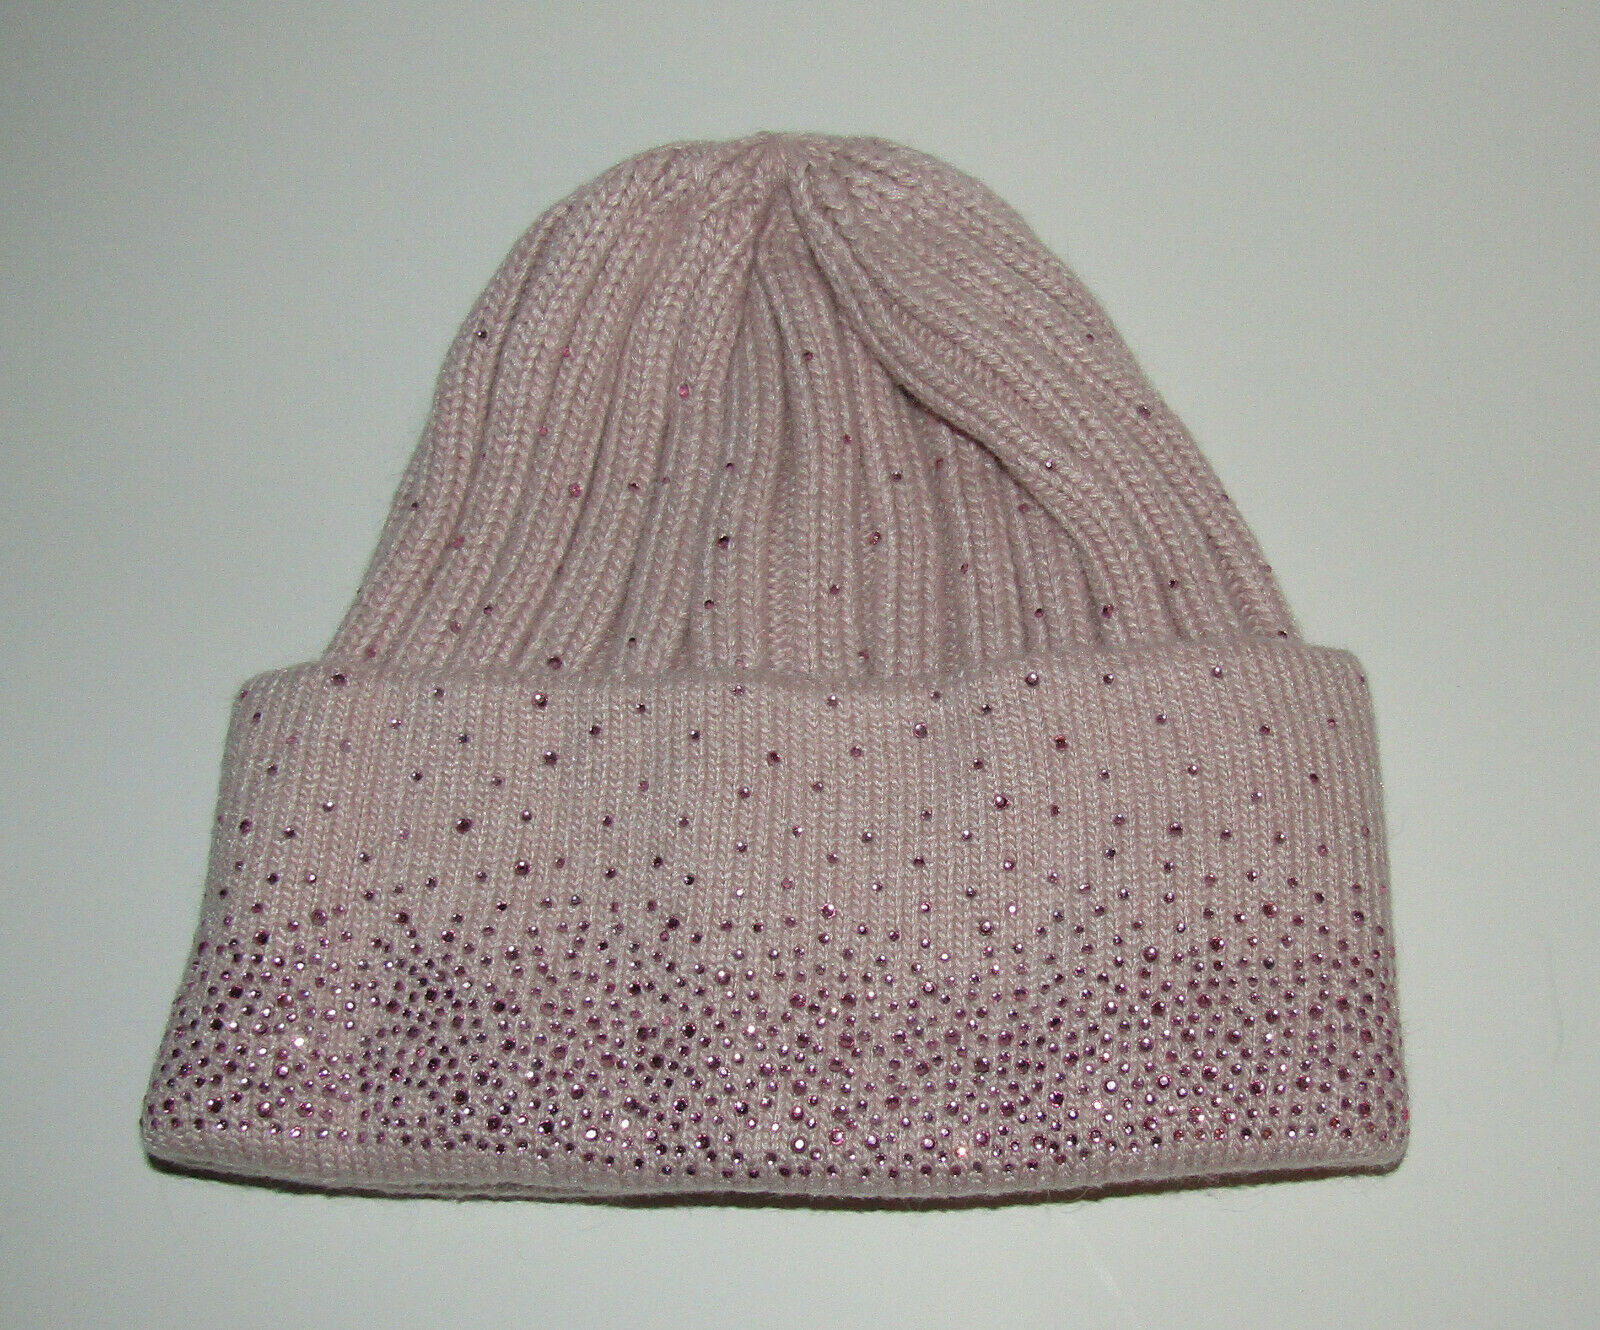 Primary image for Pink Hat Sparkly Accents New Womens Angora Acrylic